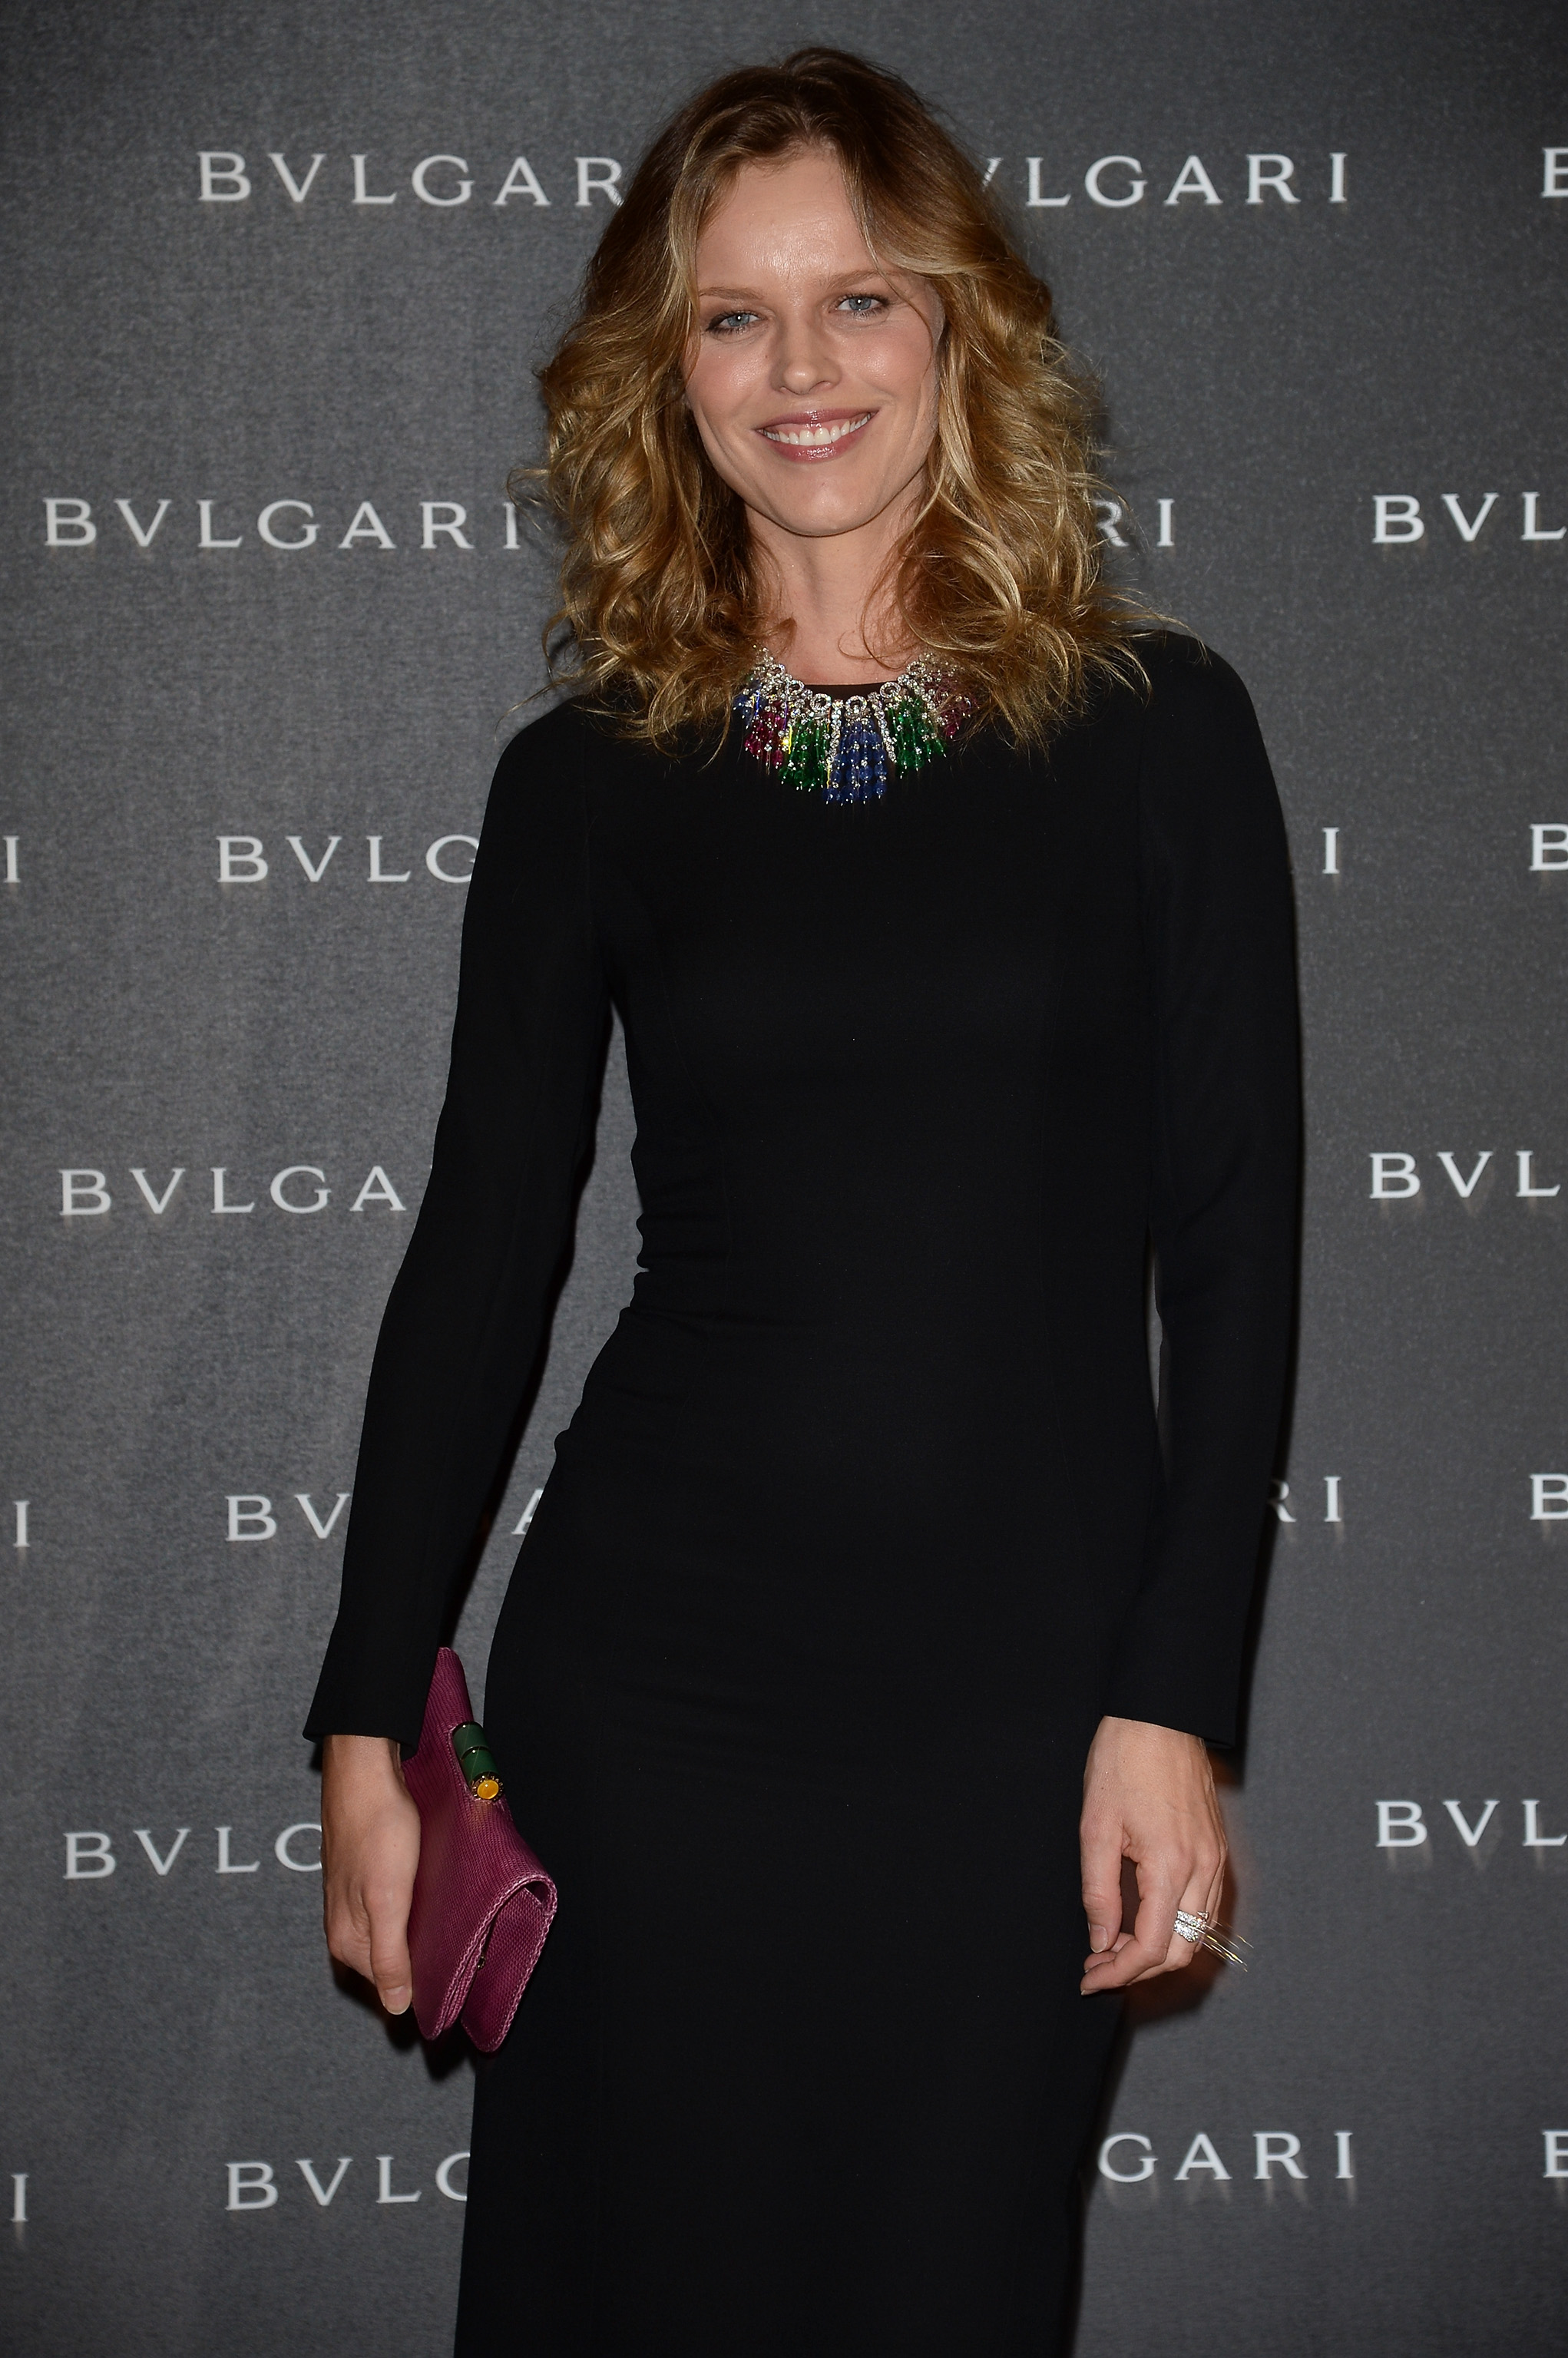 21.09.2014 - Bulgari Spring/Summer 2014 Accessories Collection - Eva Herzigova - Makeup hair Massimo Serini